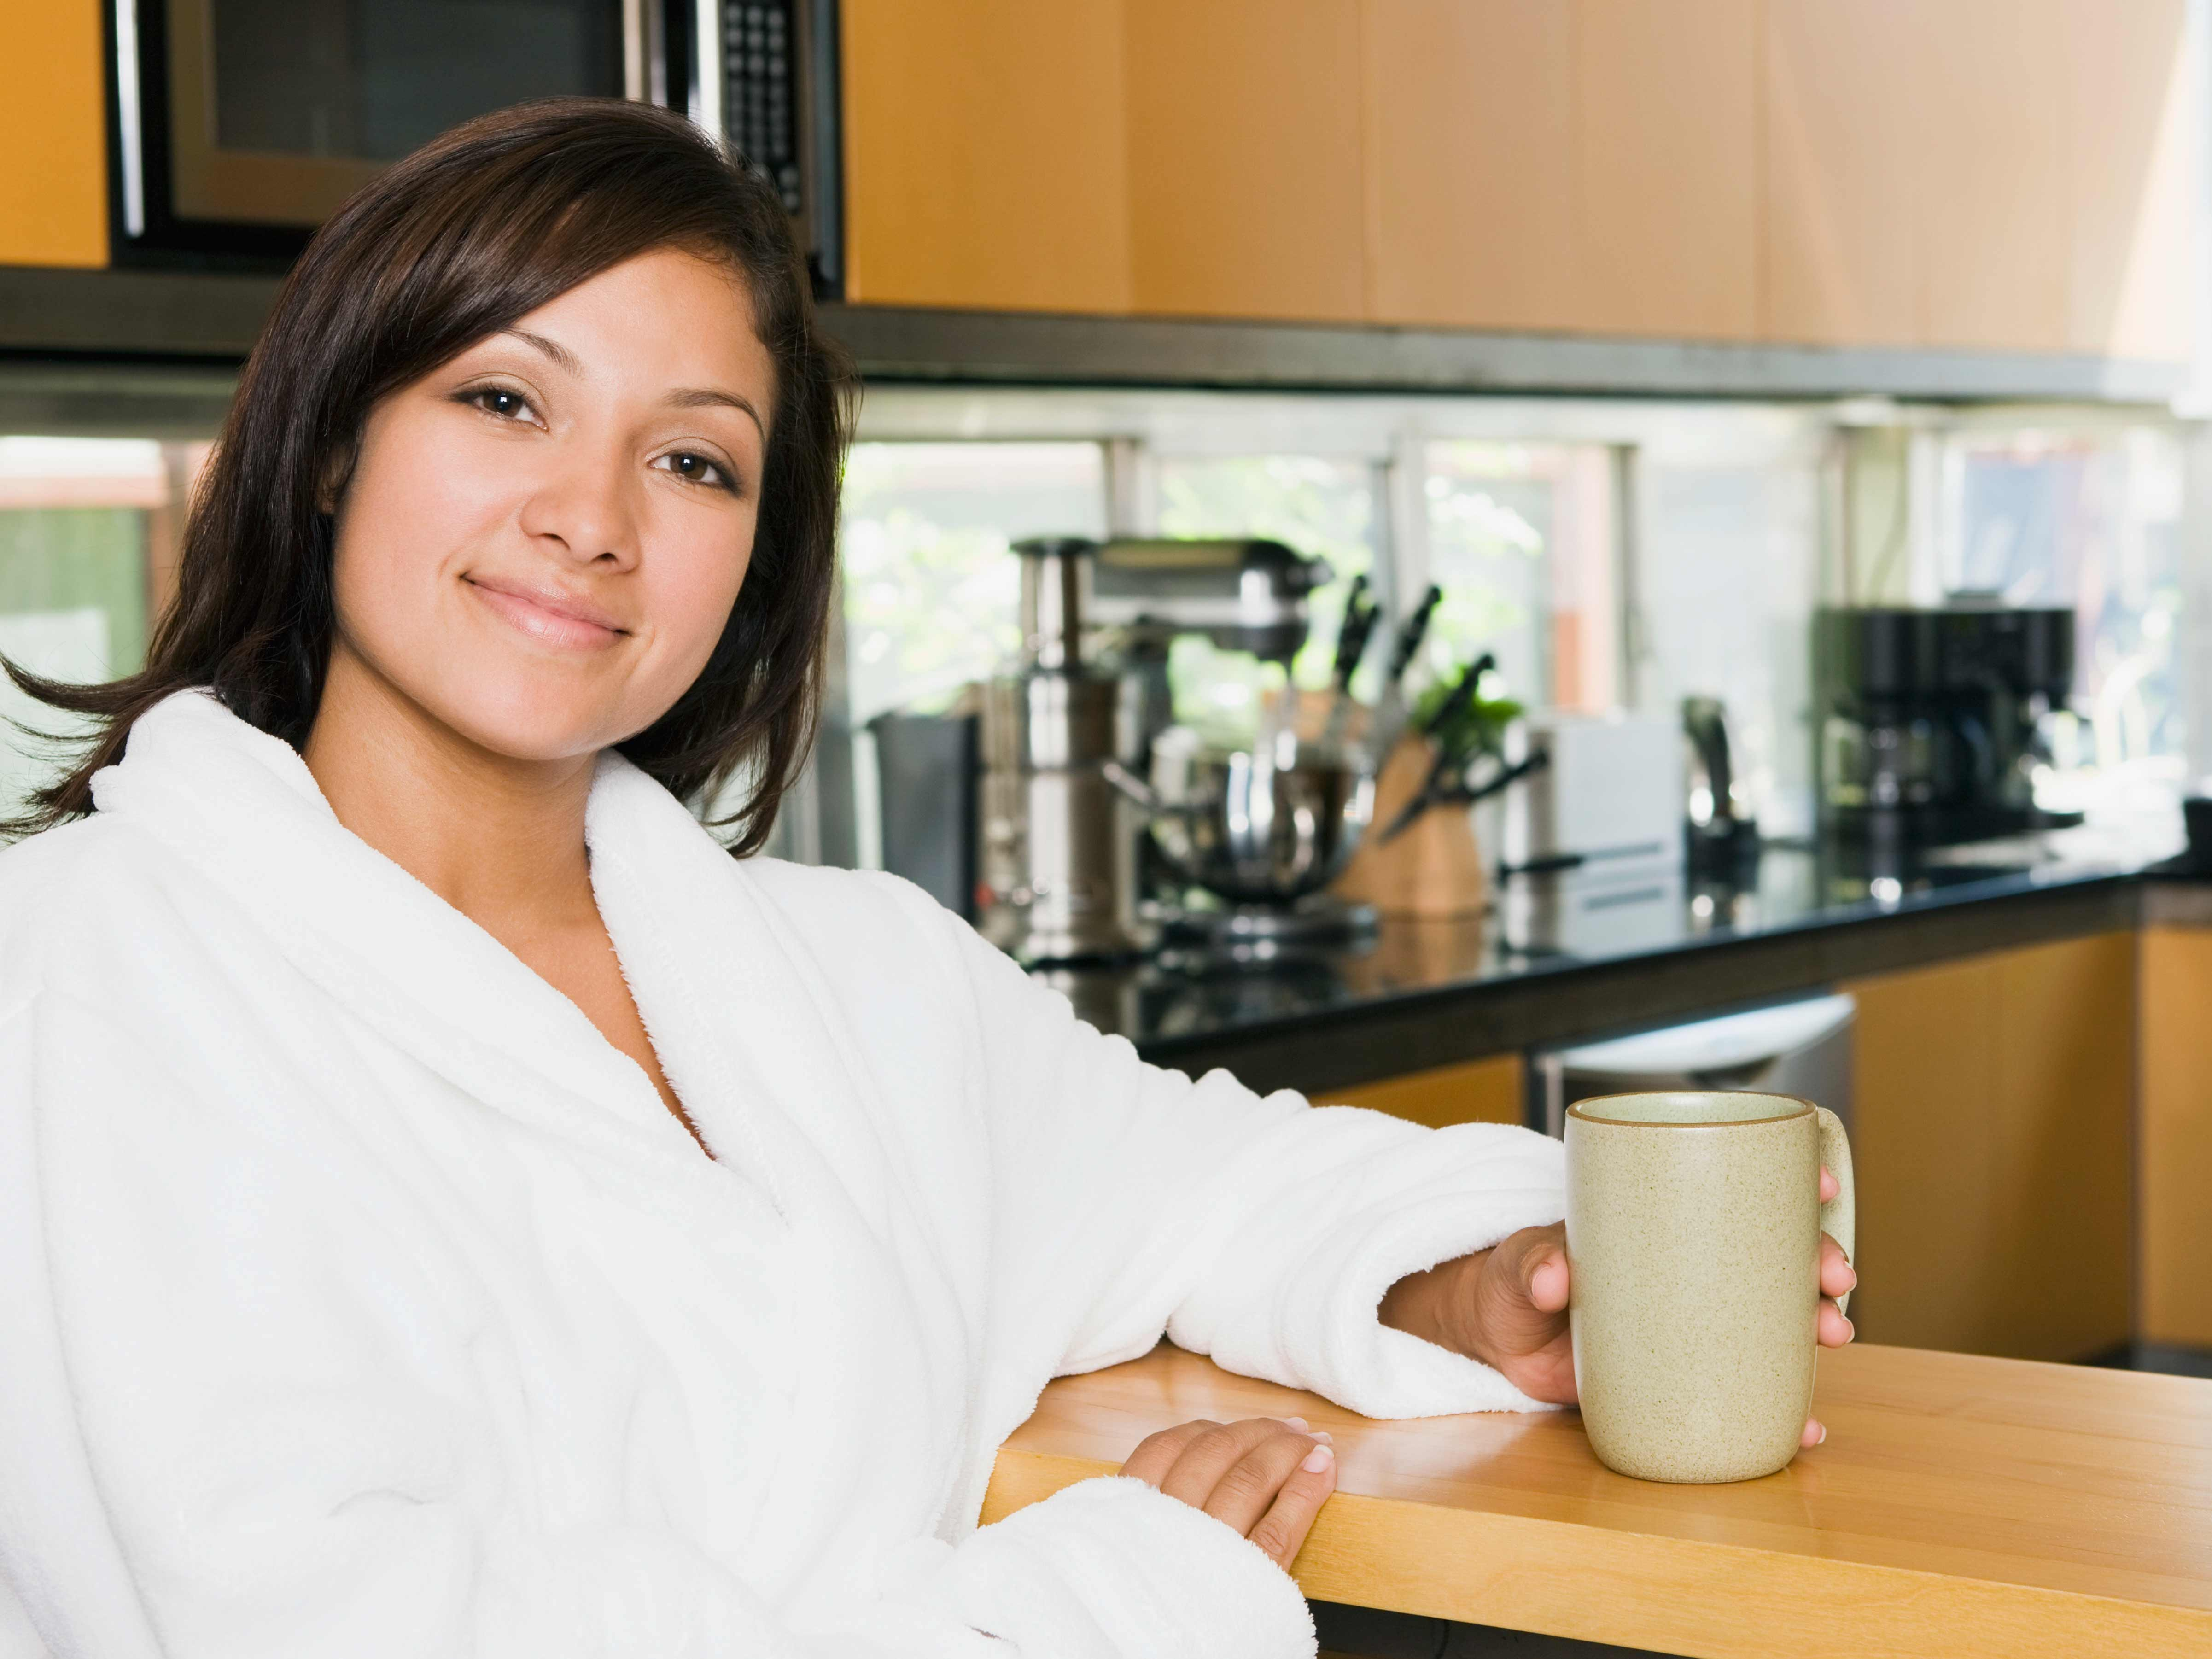 Coffee tied to decreased risk of MS